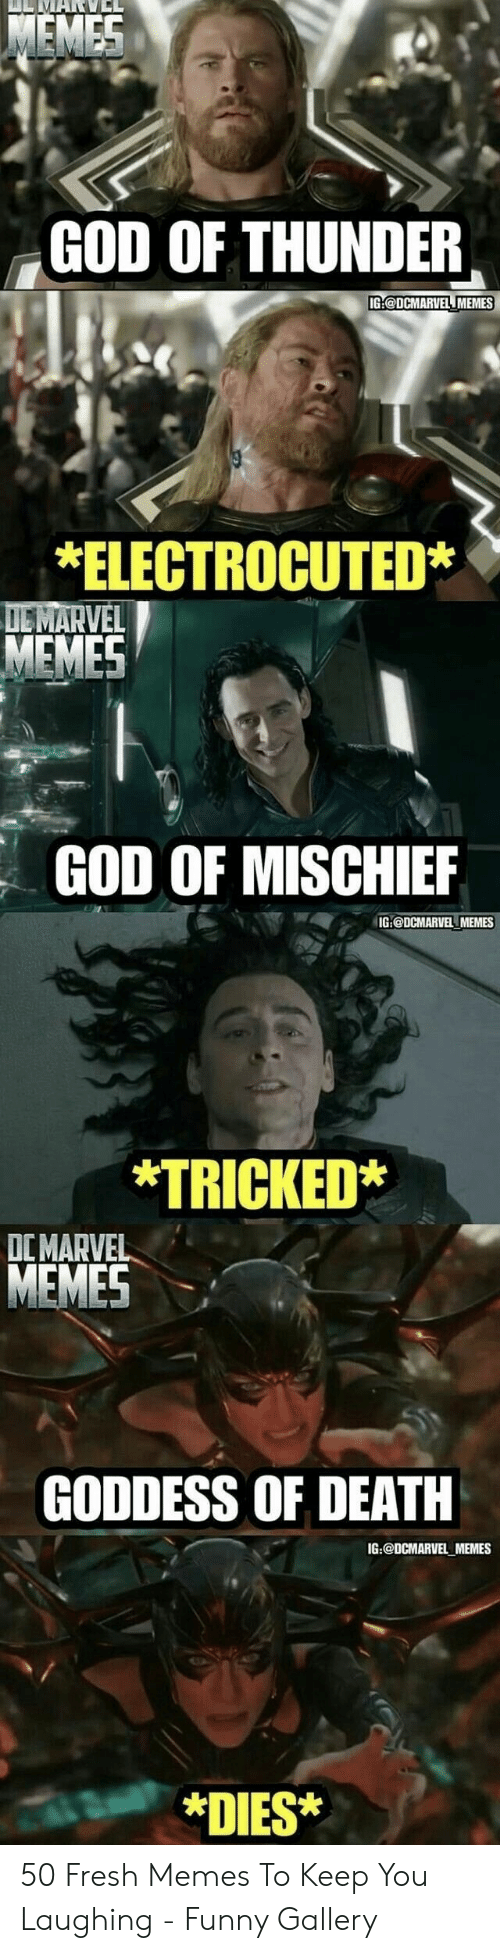 Fresh, Funny, and God: GOD OF THUNDER  IG:@DCMARVEL MEMES  *ELECTROCUTED*  MEMES  GOD OF MISCHIEF  IG:@DCMARVEL MEMES  *TRICKED*  DCMARVEL  GODDESS OF DEATH  IG:@DCMARVEL MEMES  *DIES* 50 Fresh Memes To Keep You Laughing - Funny Gallery